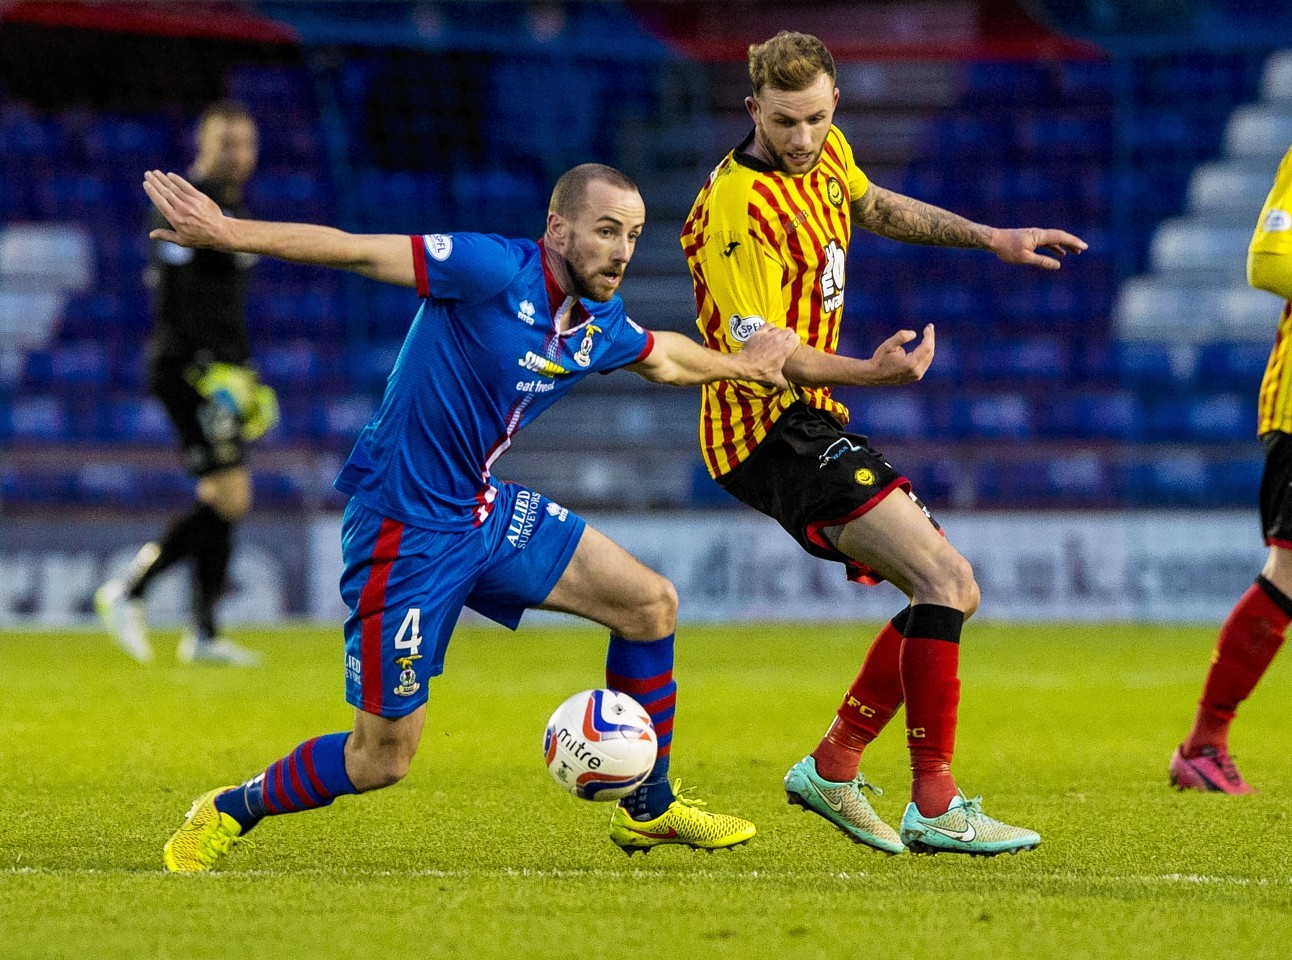 James Vincent returned to the Caley Thistle midfield